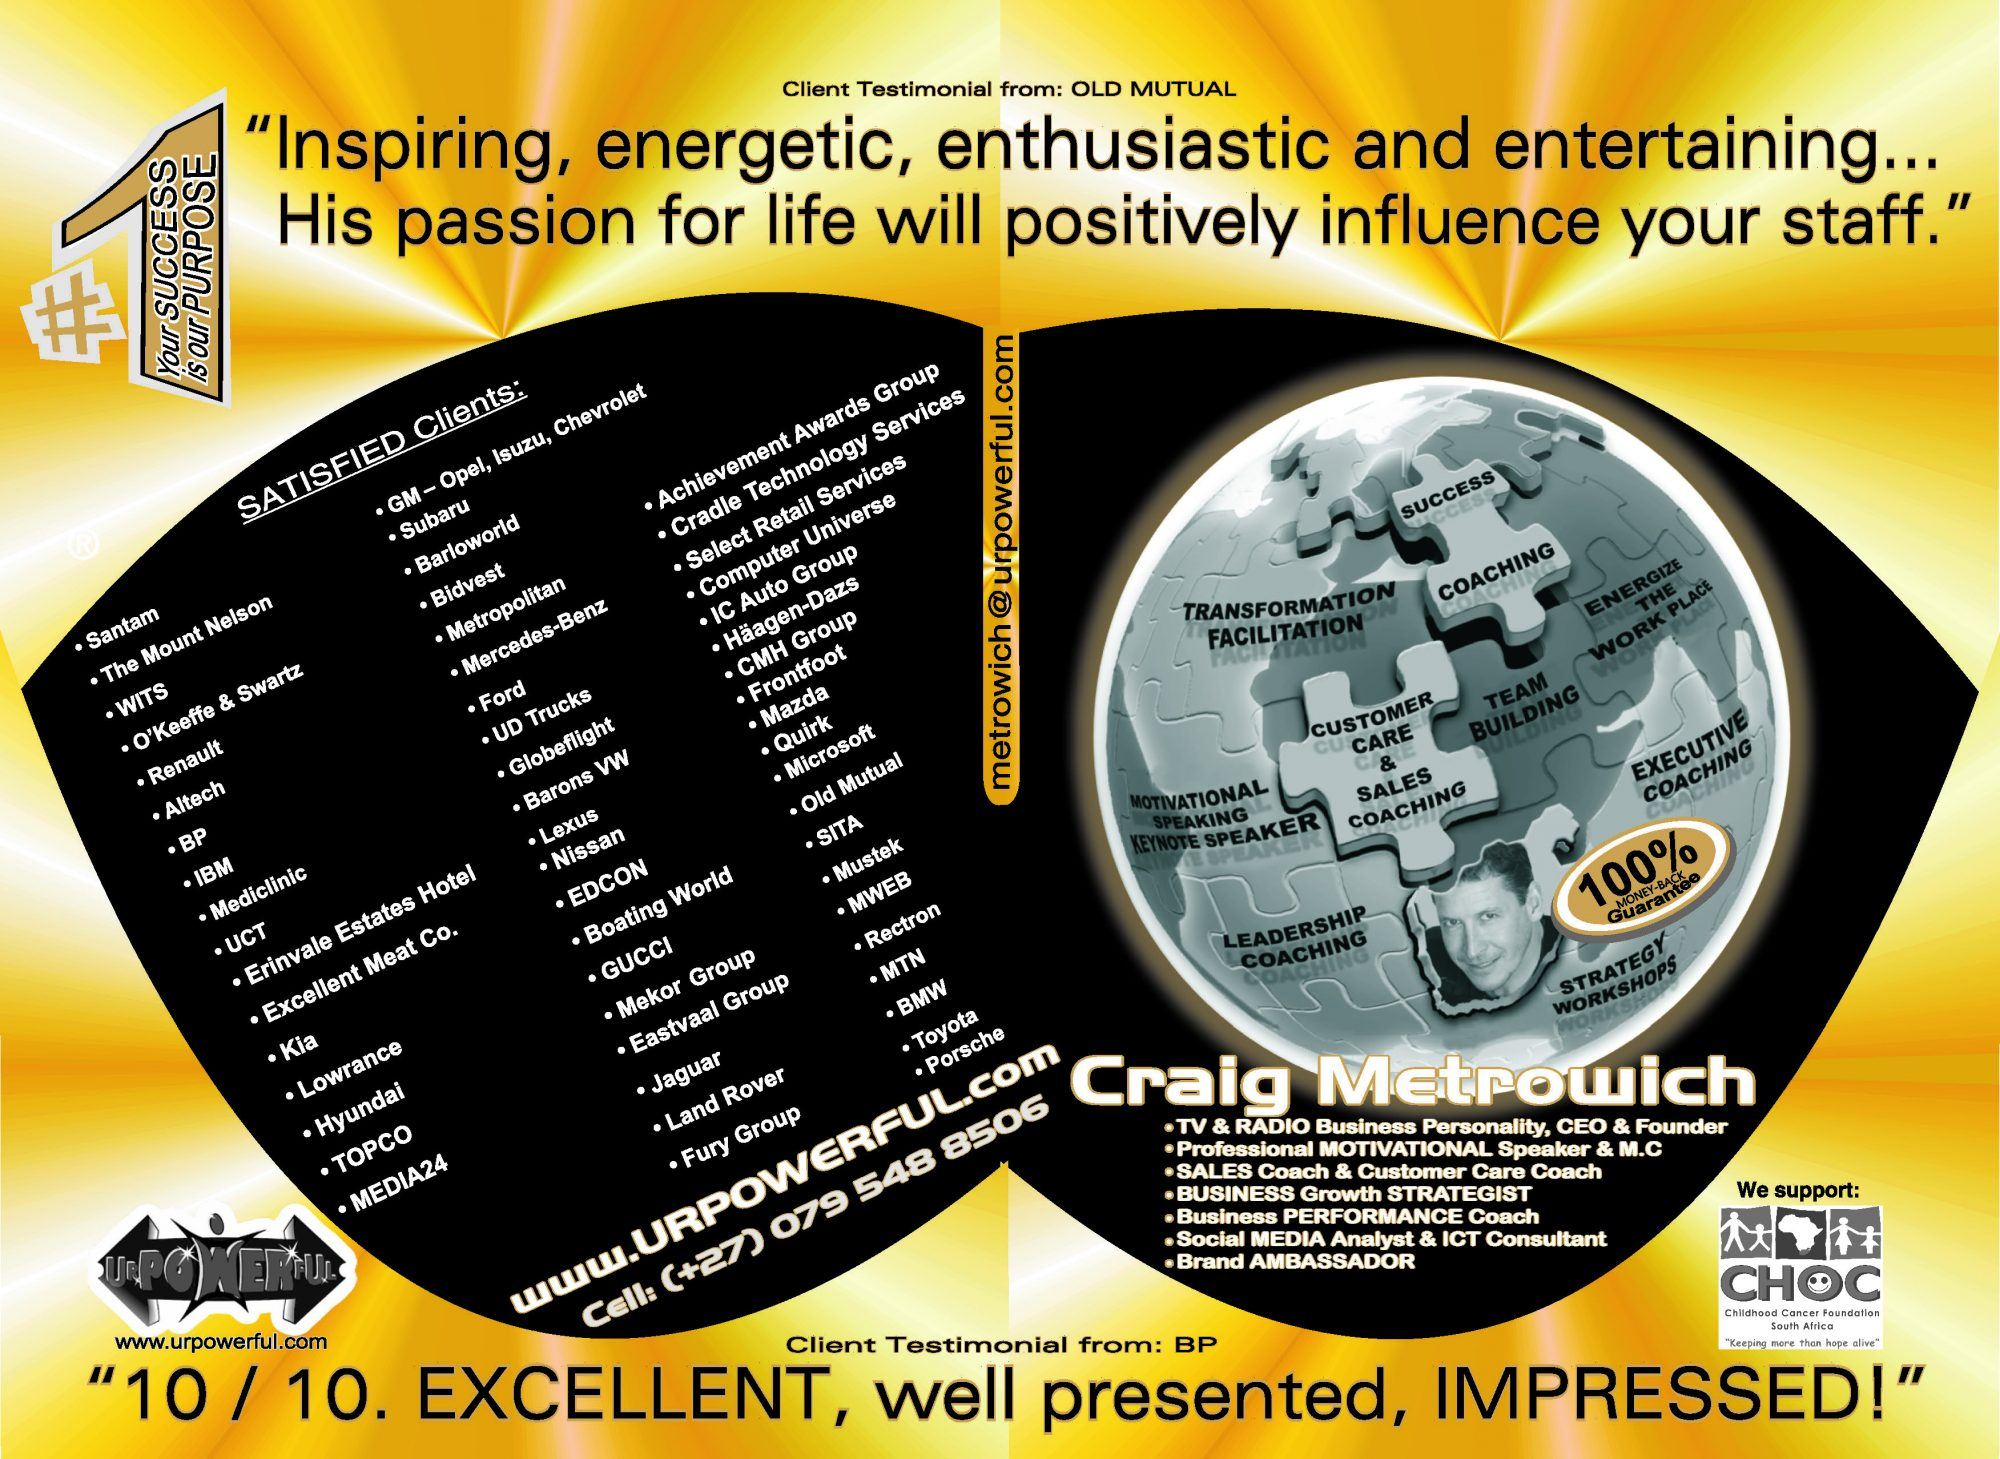 urpowerful.com - U R POWERFUL Coaching Craig Metrowich